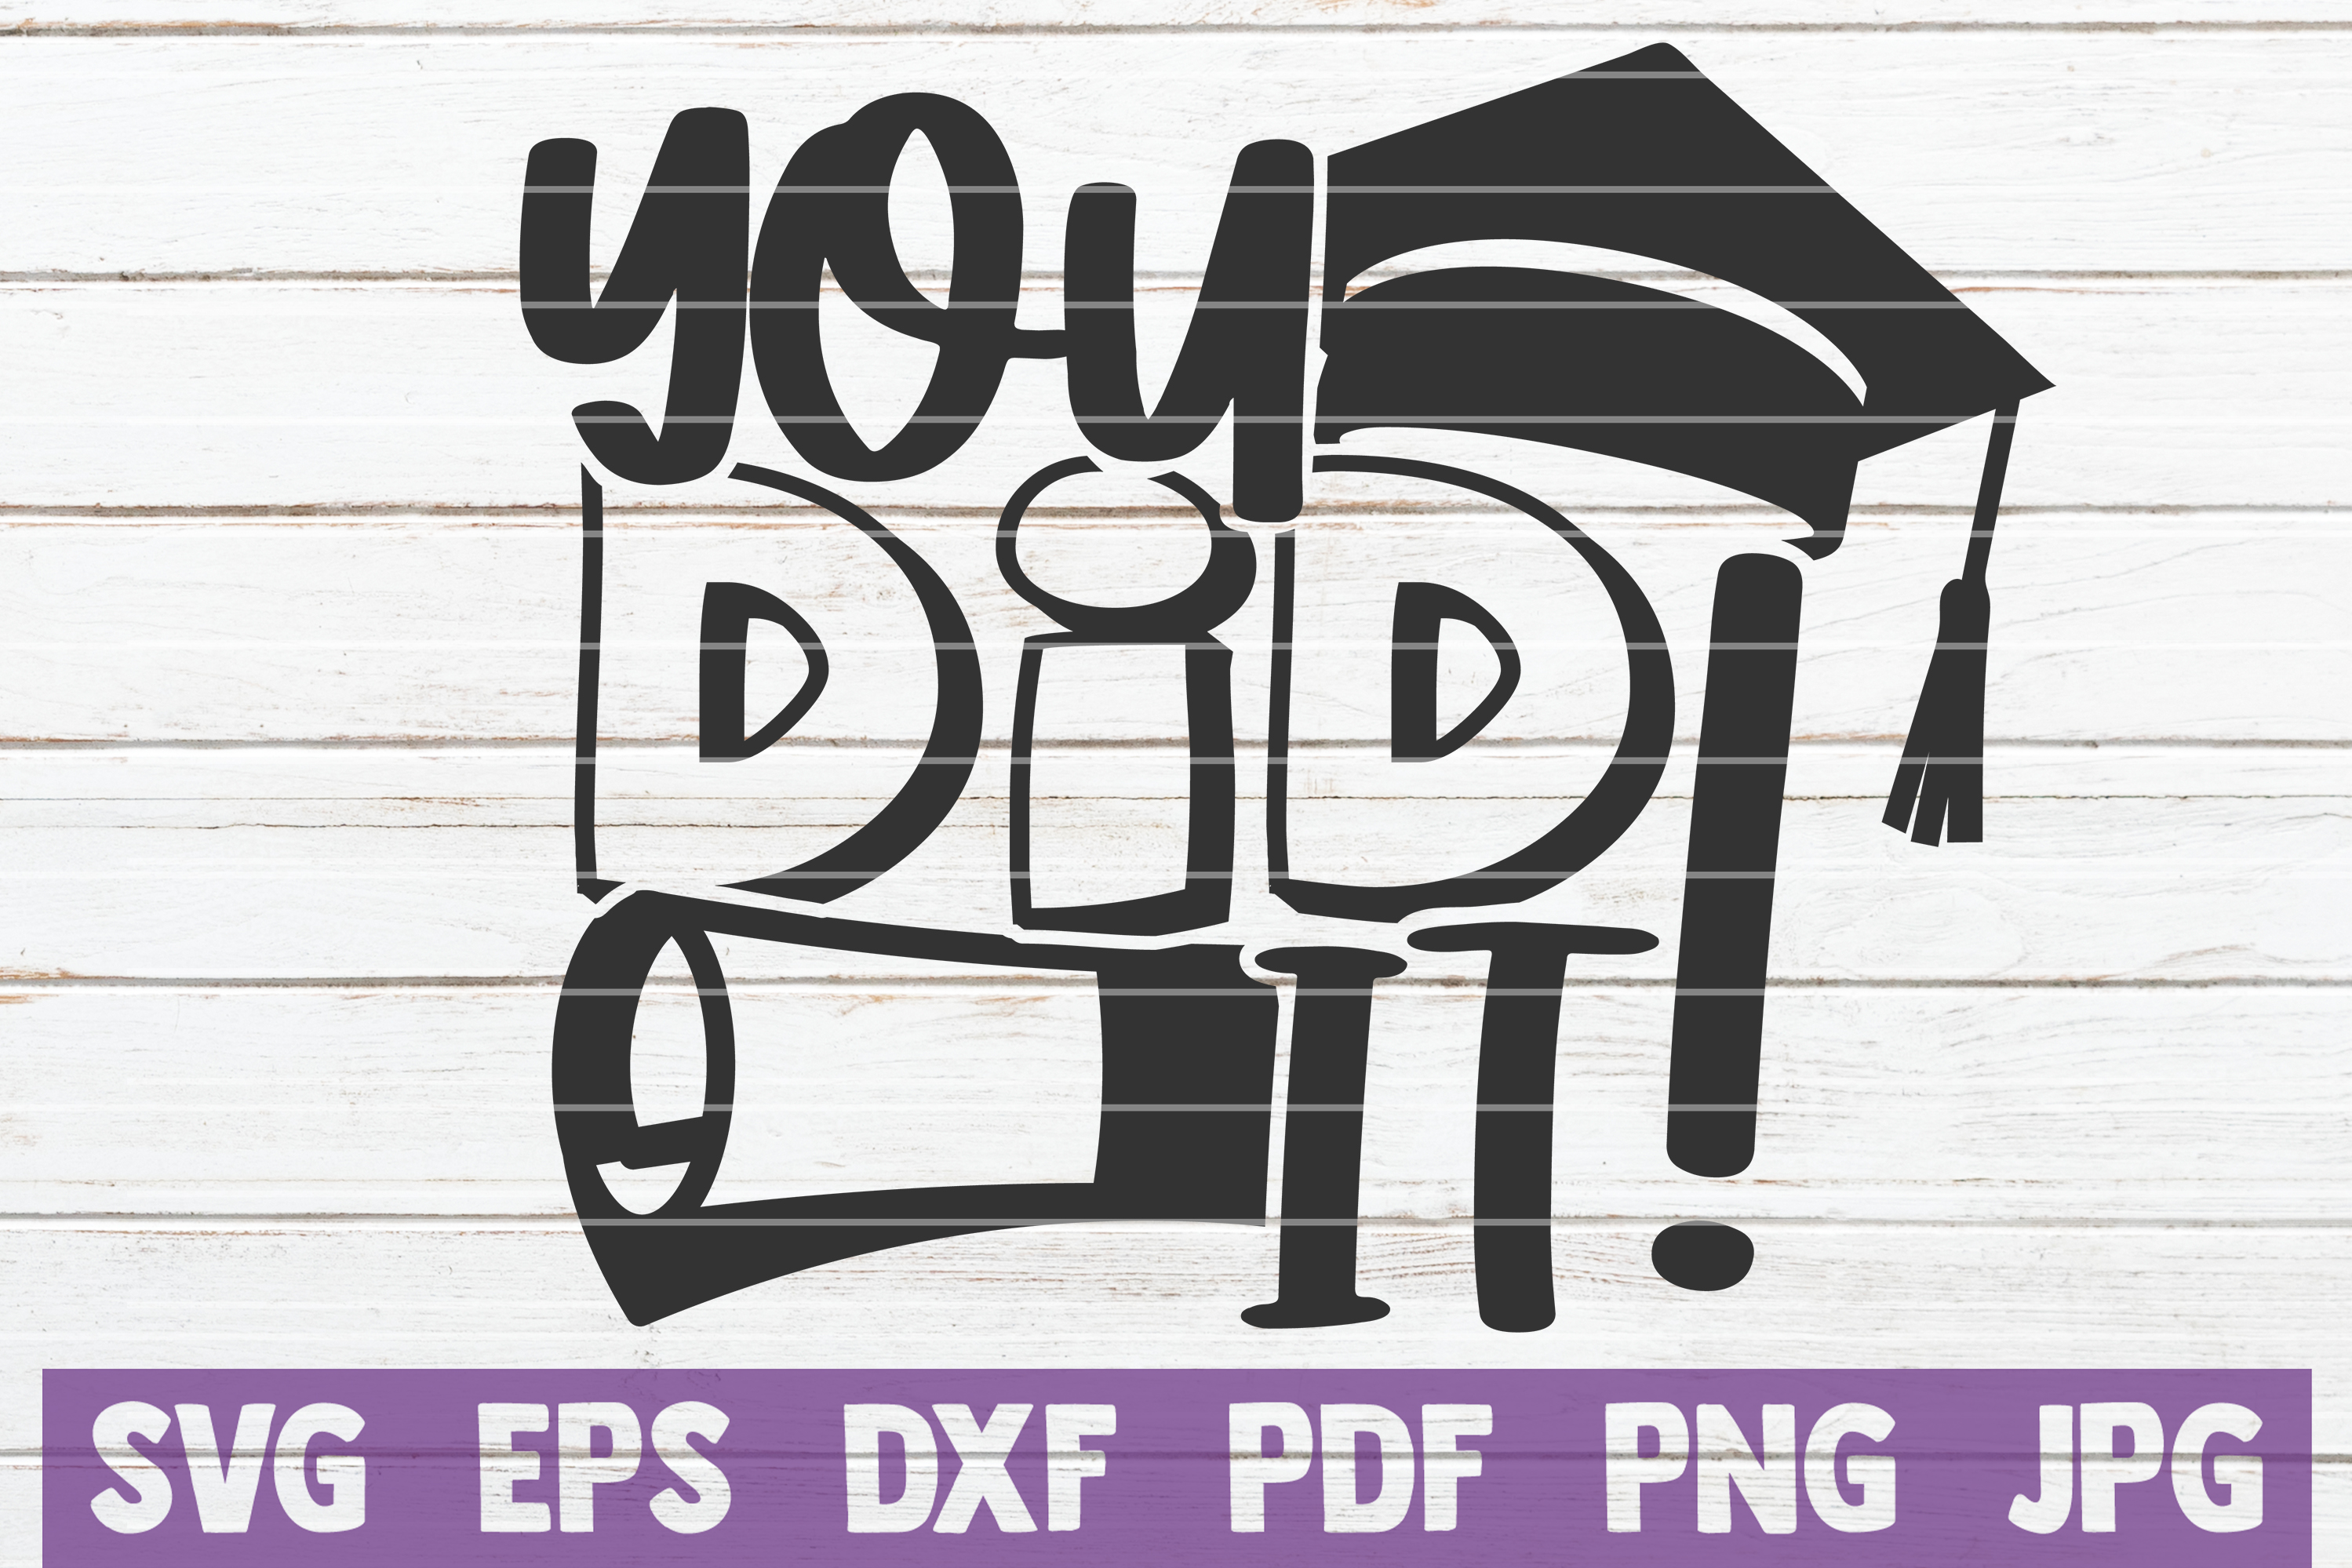 Download Free You Did It Graphic By Mintymarshmallows Creative Fabrica for Cricut Explore, Silhouette and other cutting machines.